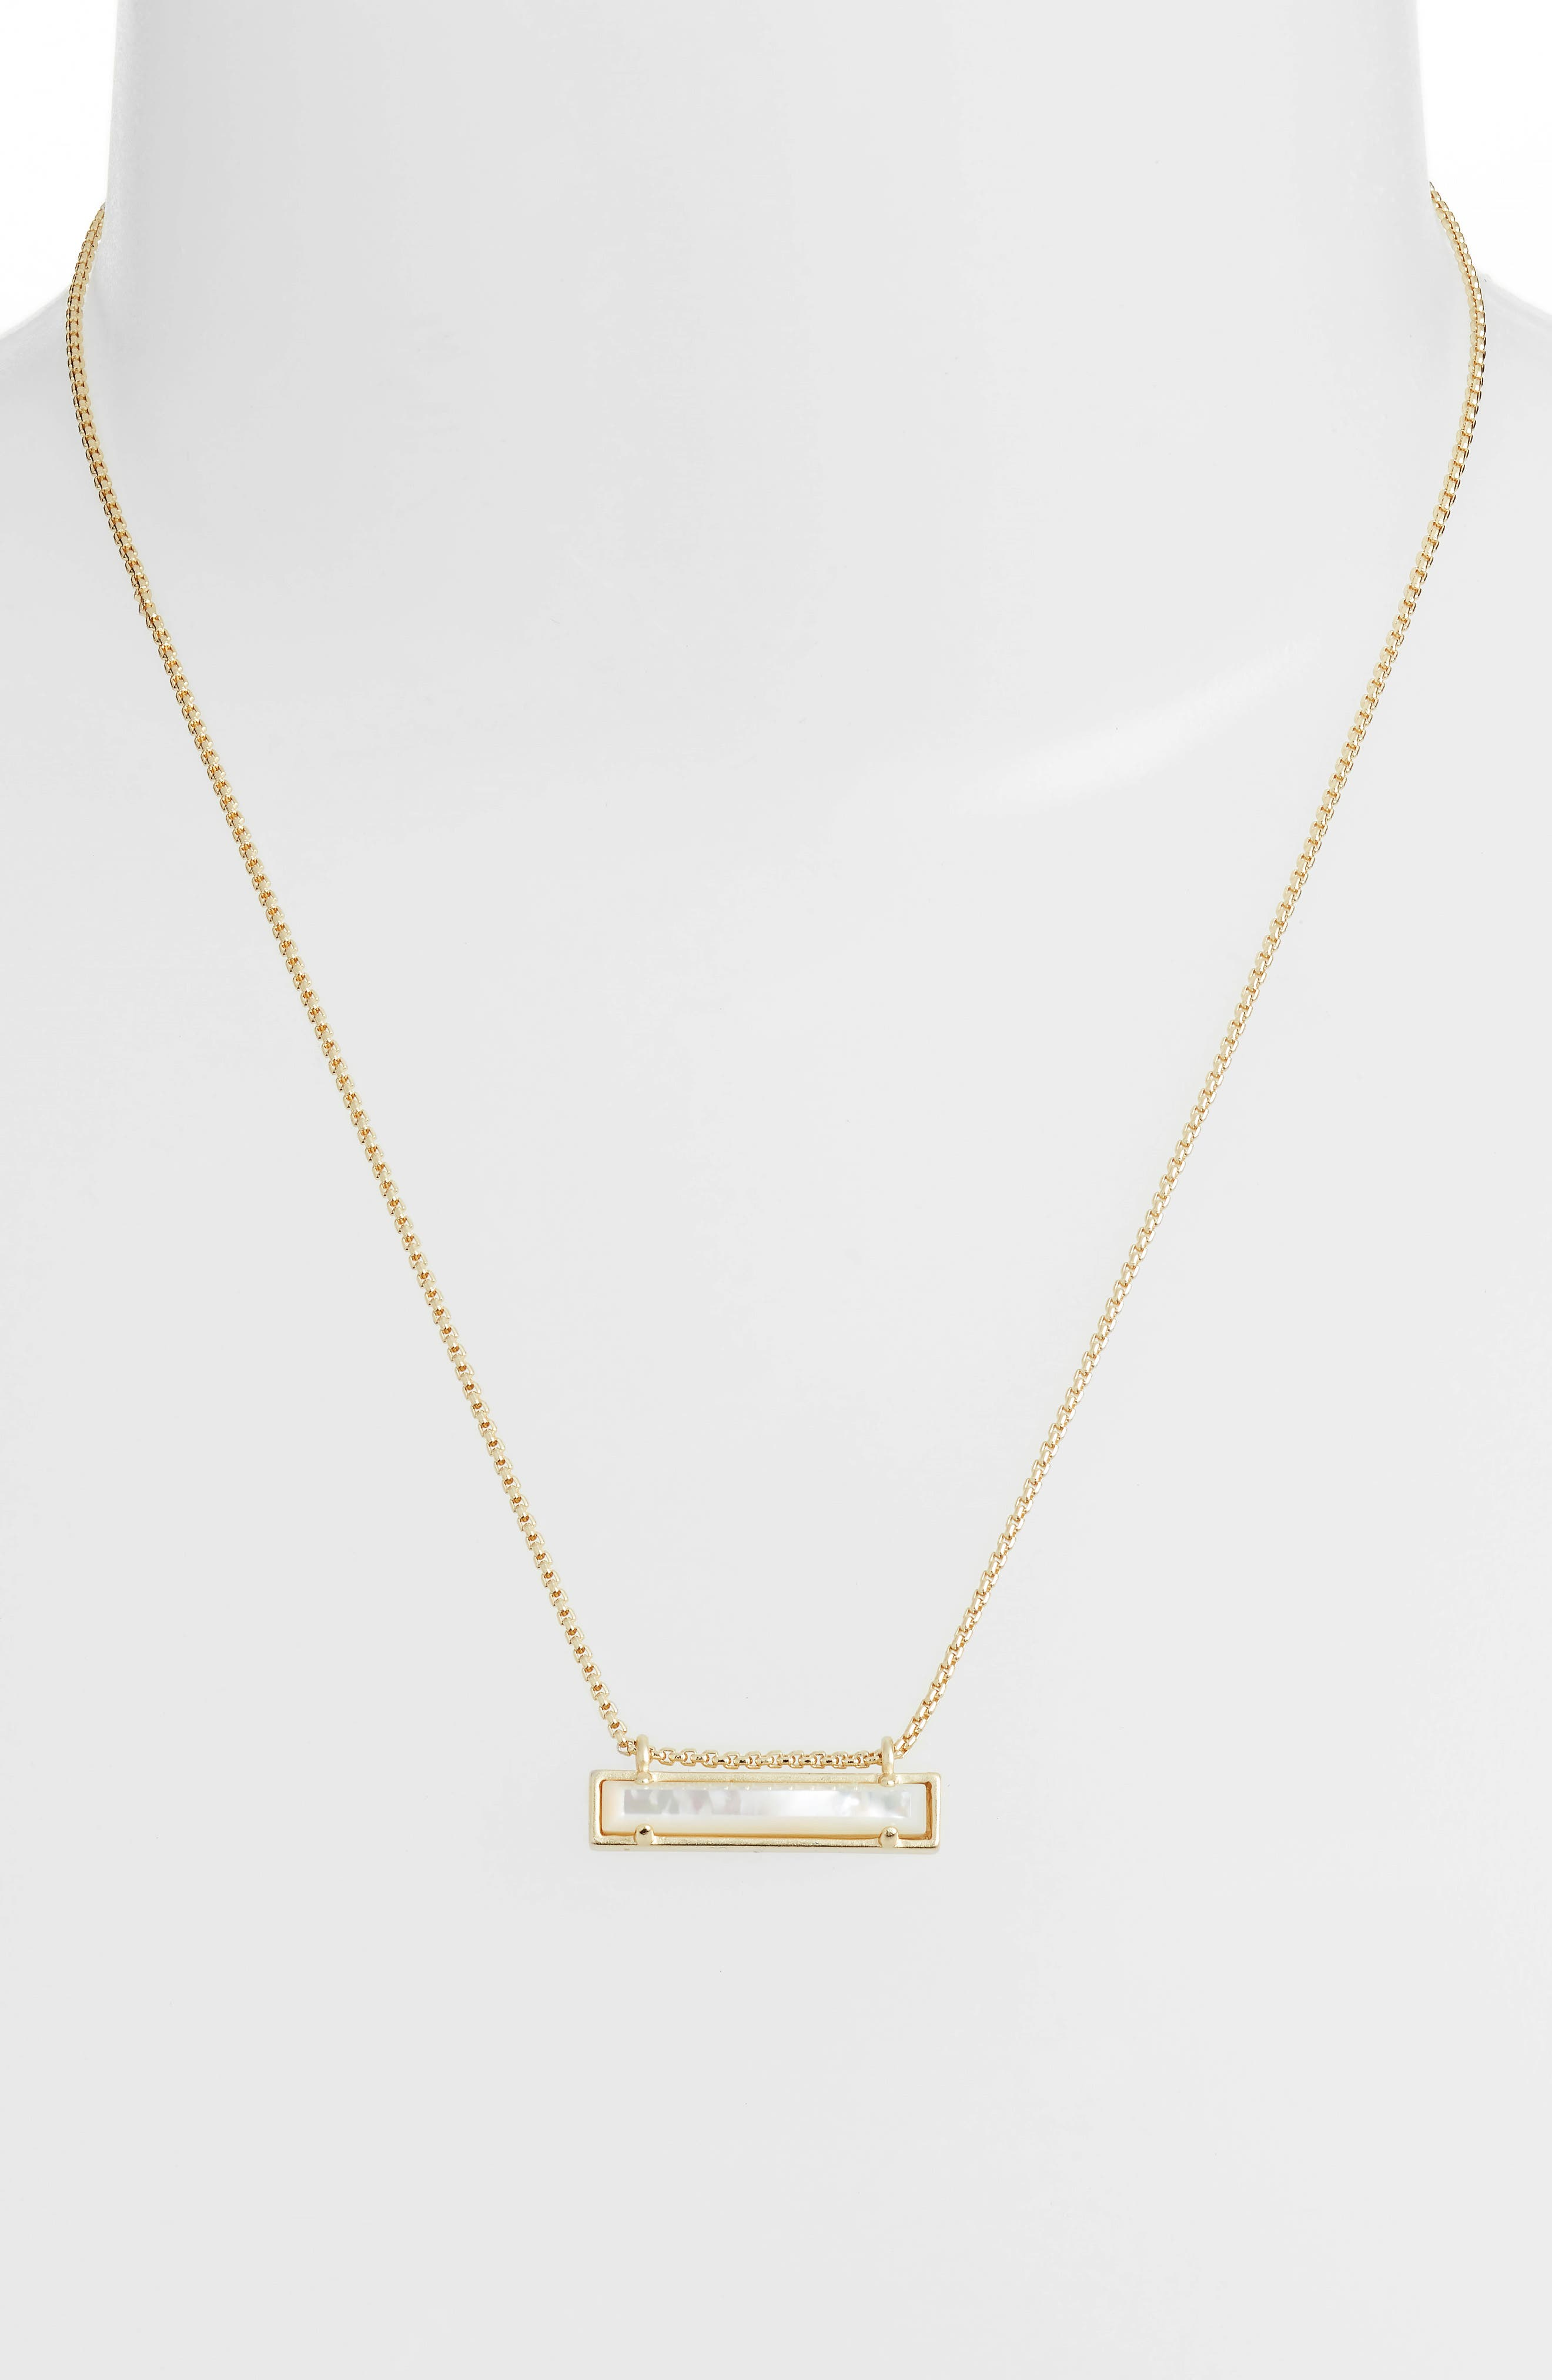 KENDRA SCOTT, Leanor Pendant Necklace, Alternate thumbnail 2, color, IVORY MOP/ GOLD